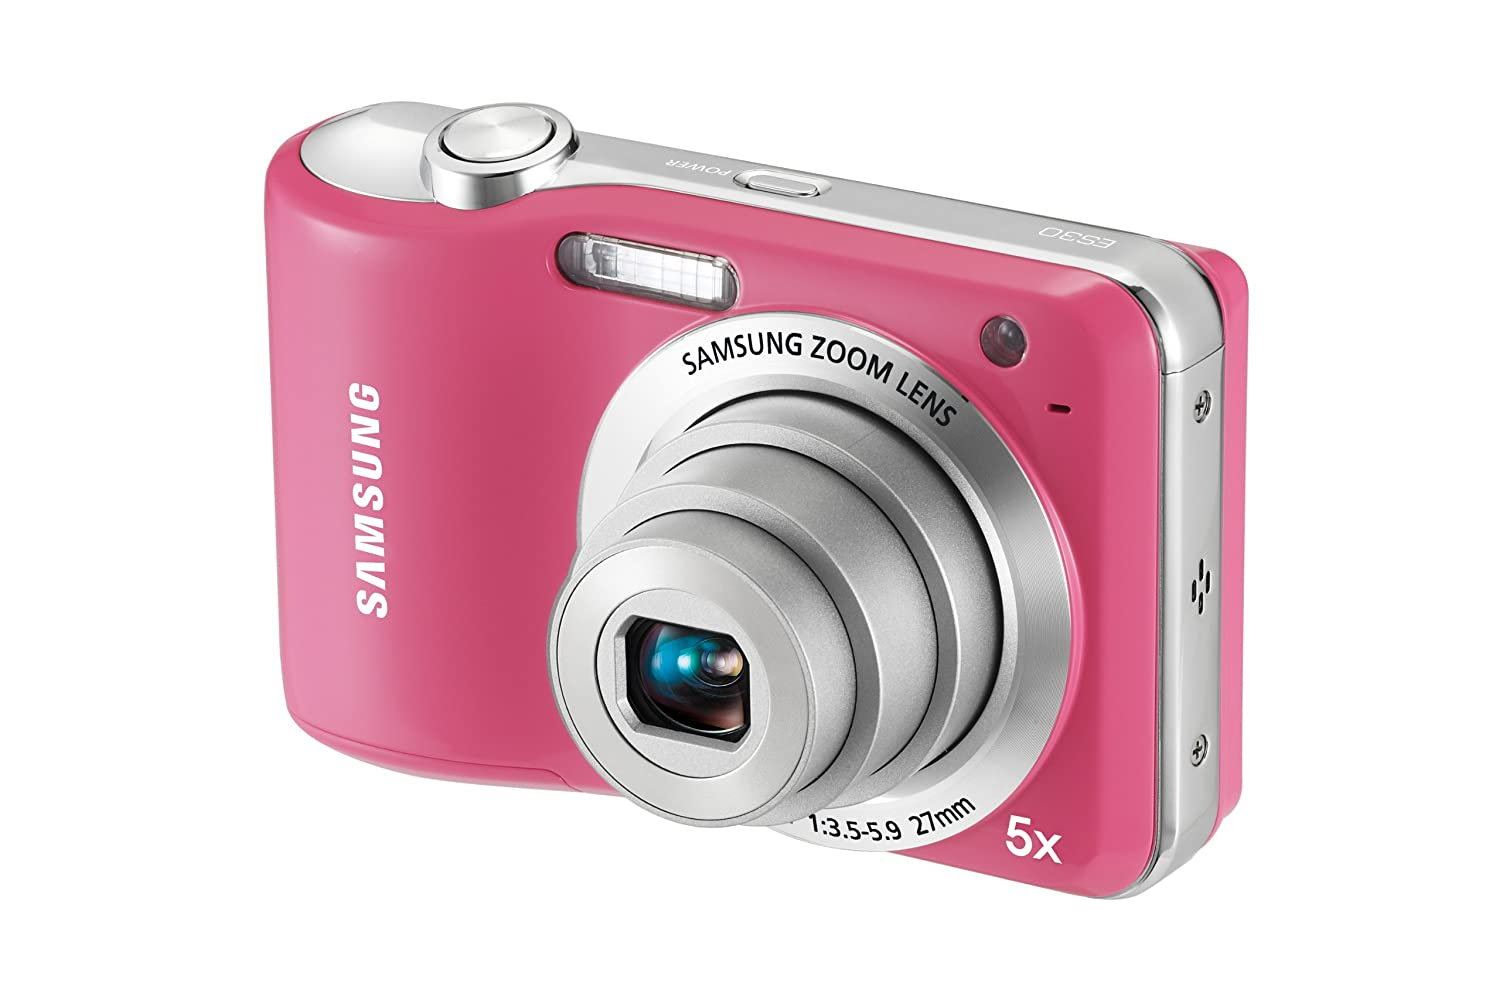 SAMSUNG ES30 DIGITAL CAMERA WINDOWS DRIVER DOWNLOAD